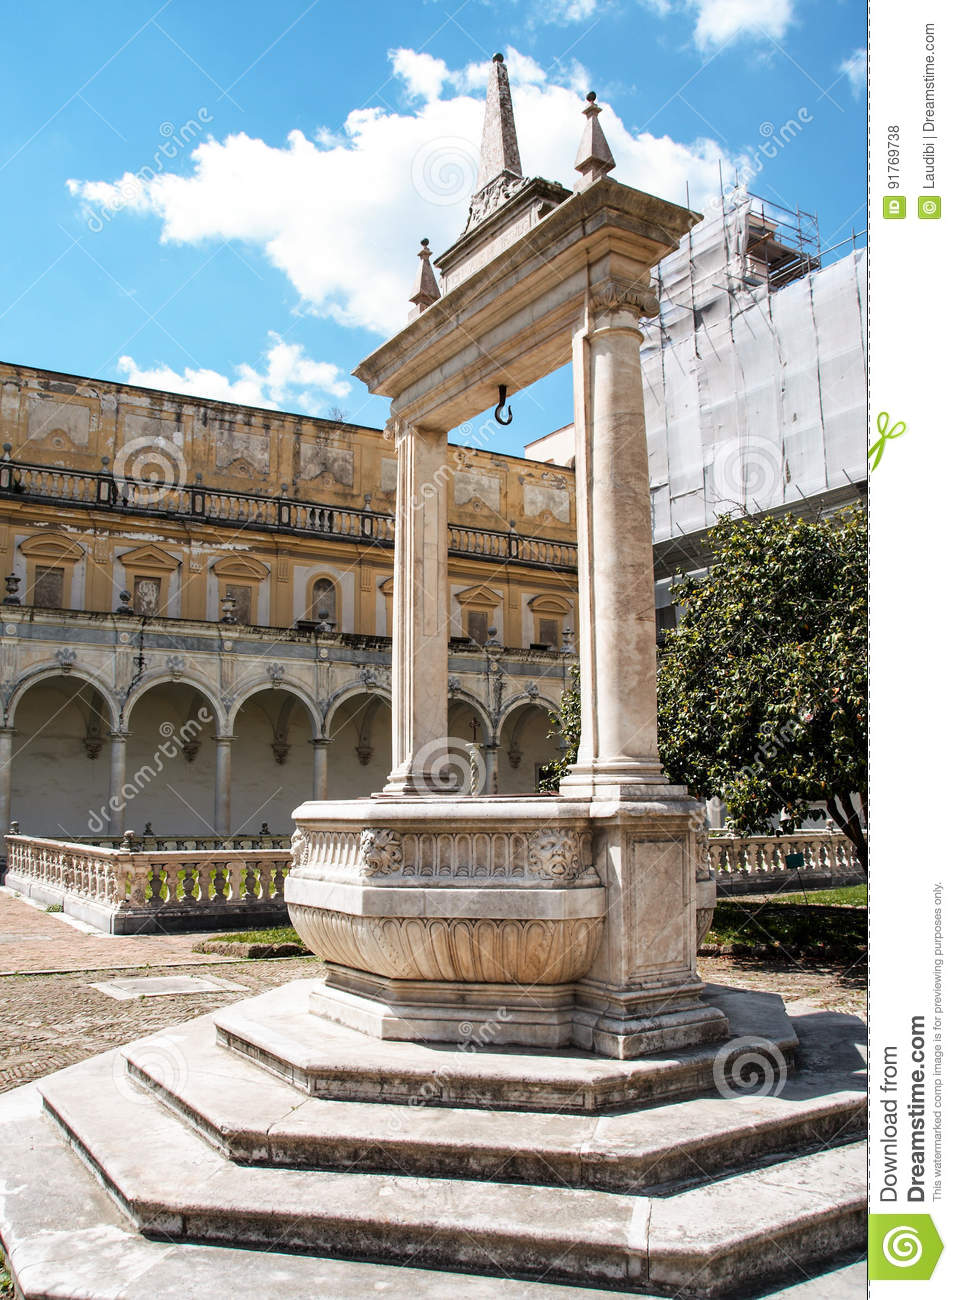 The Cloister Of San Martino Chartreuse In Naples Stock Photo Image Of Europe Baroque 91769738